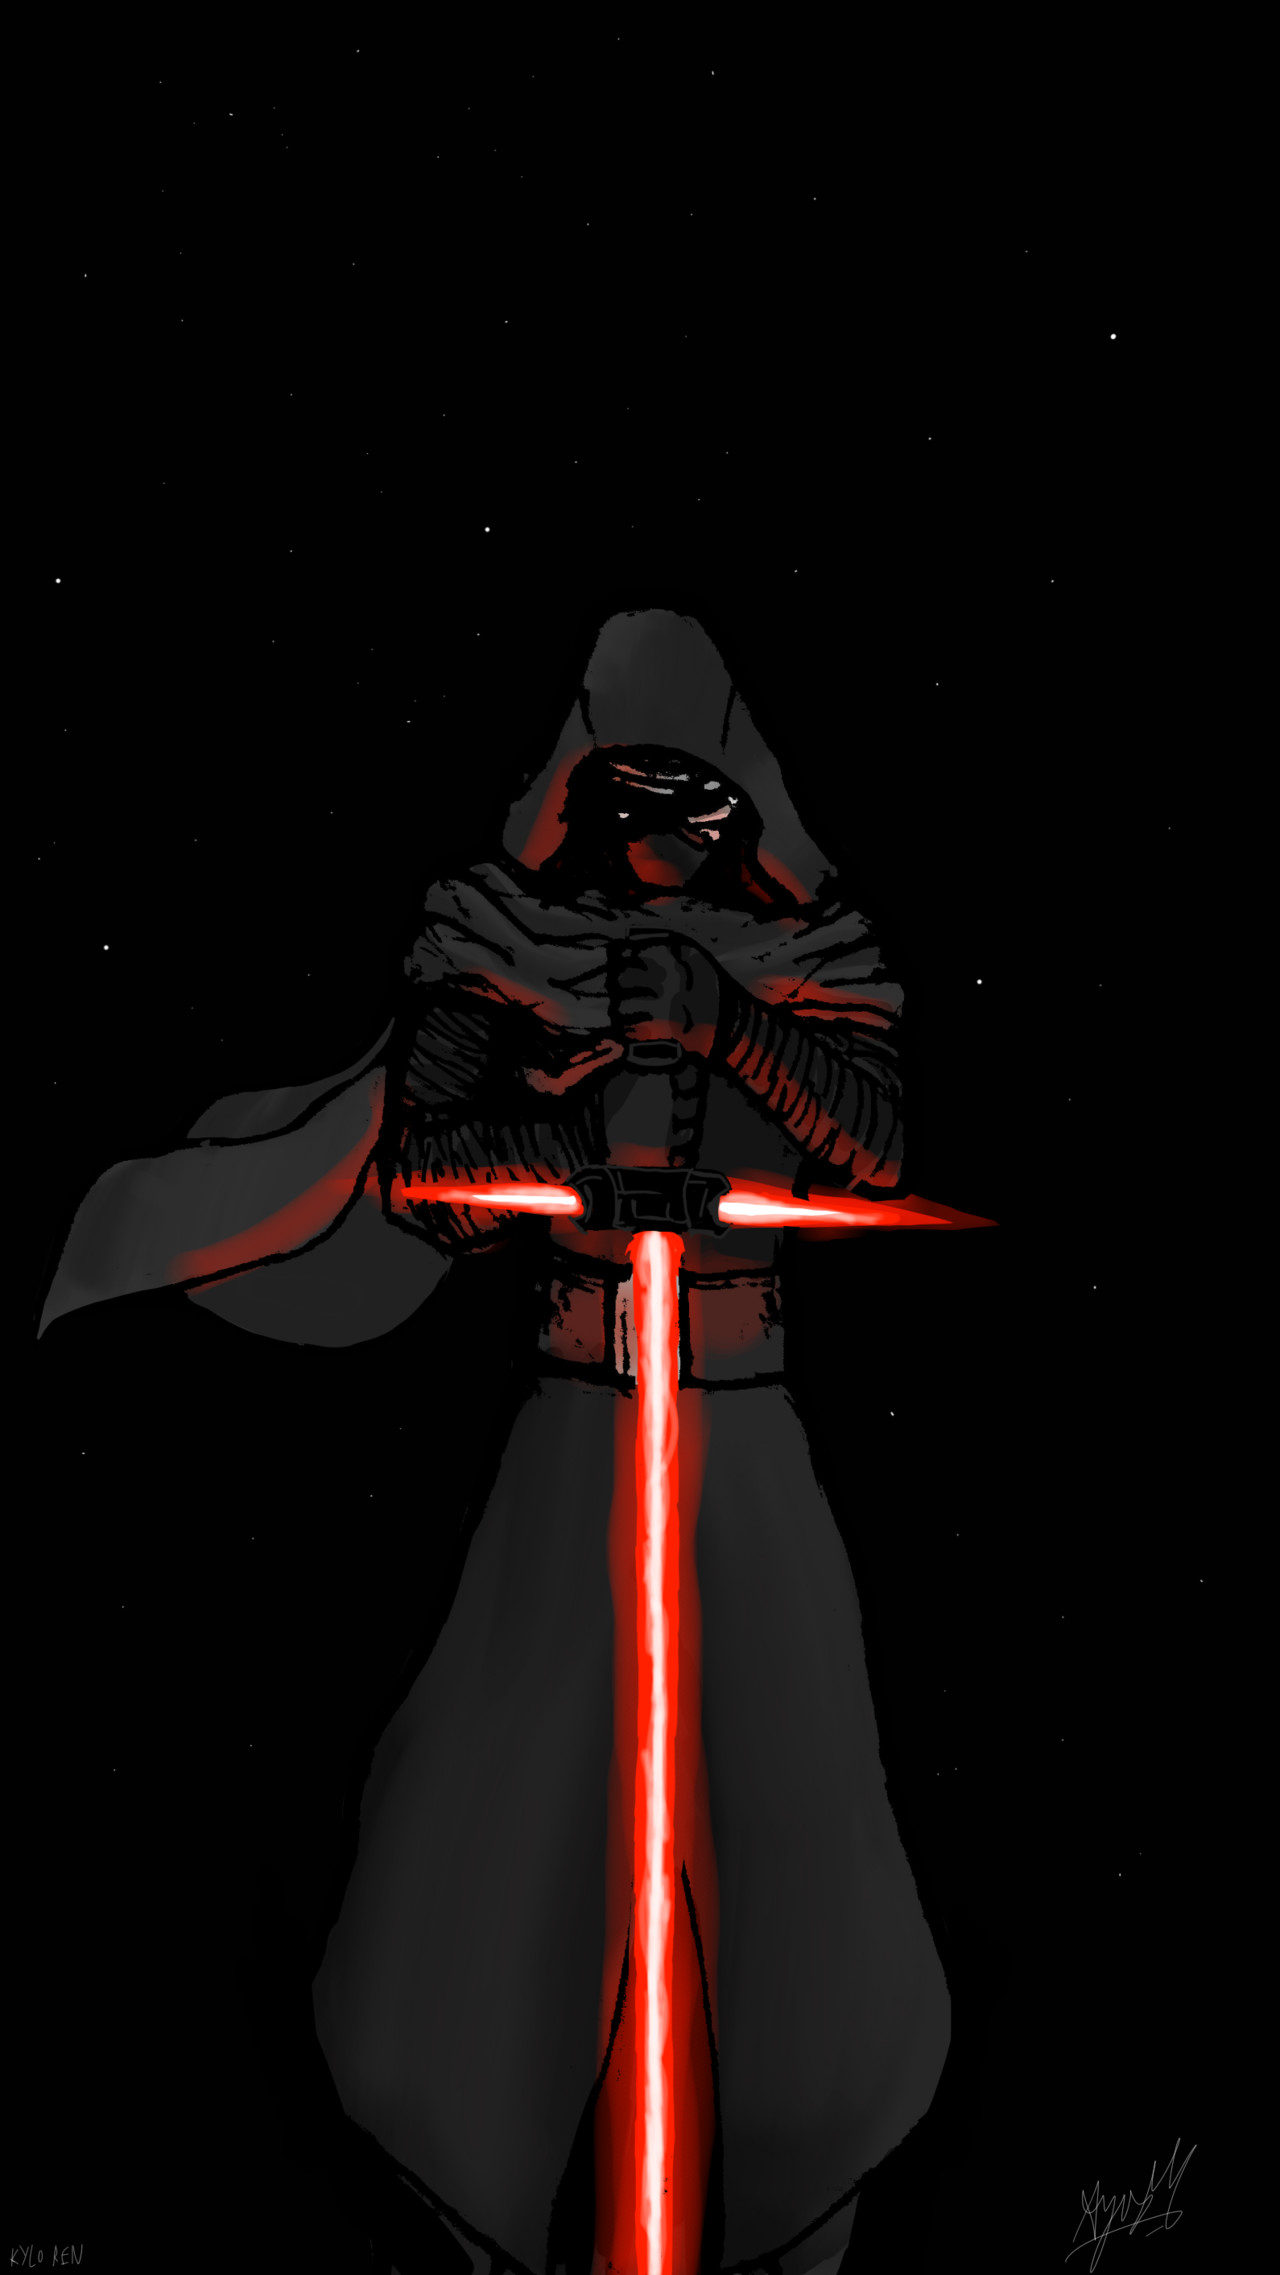 Malikisvengeance Star Wars The Force Awakens Kylo Ren Wallpaper Phone 1280x2275 Download Hd Wallpaper Wallpapertip